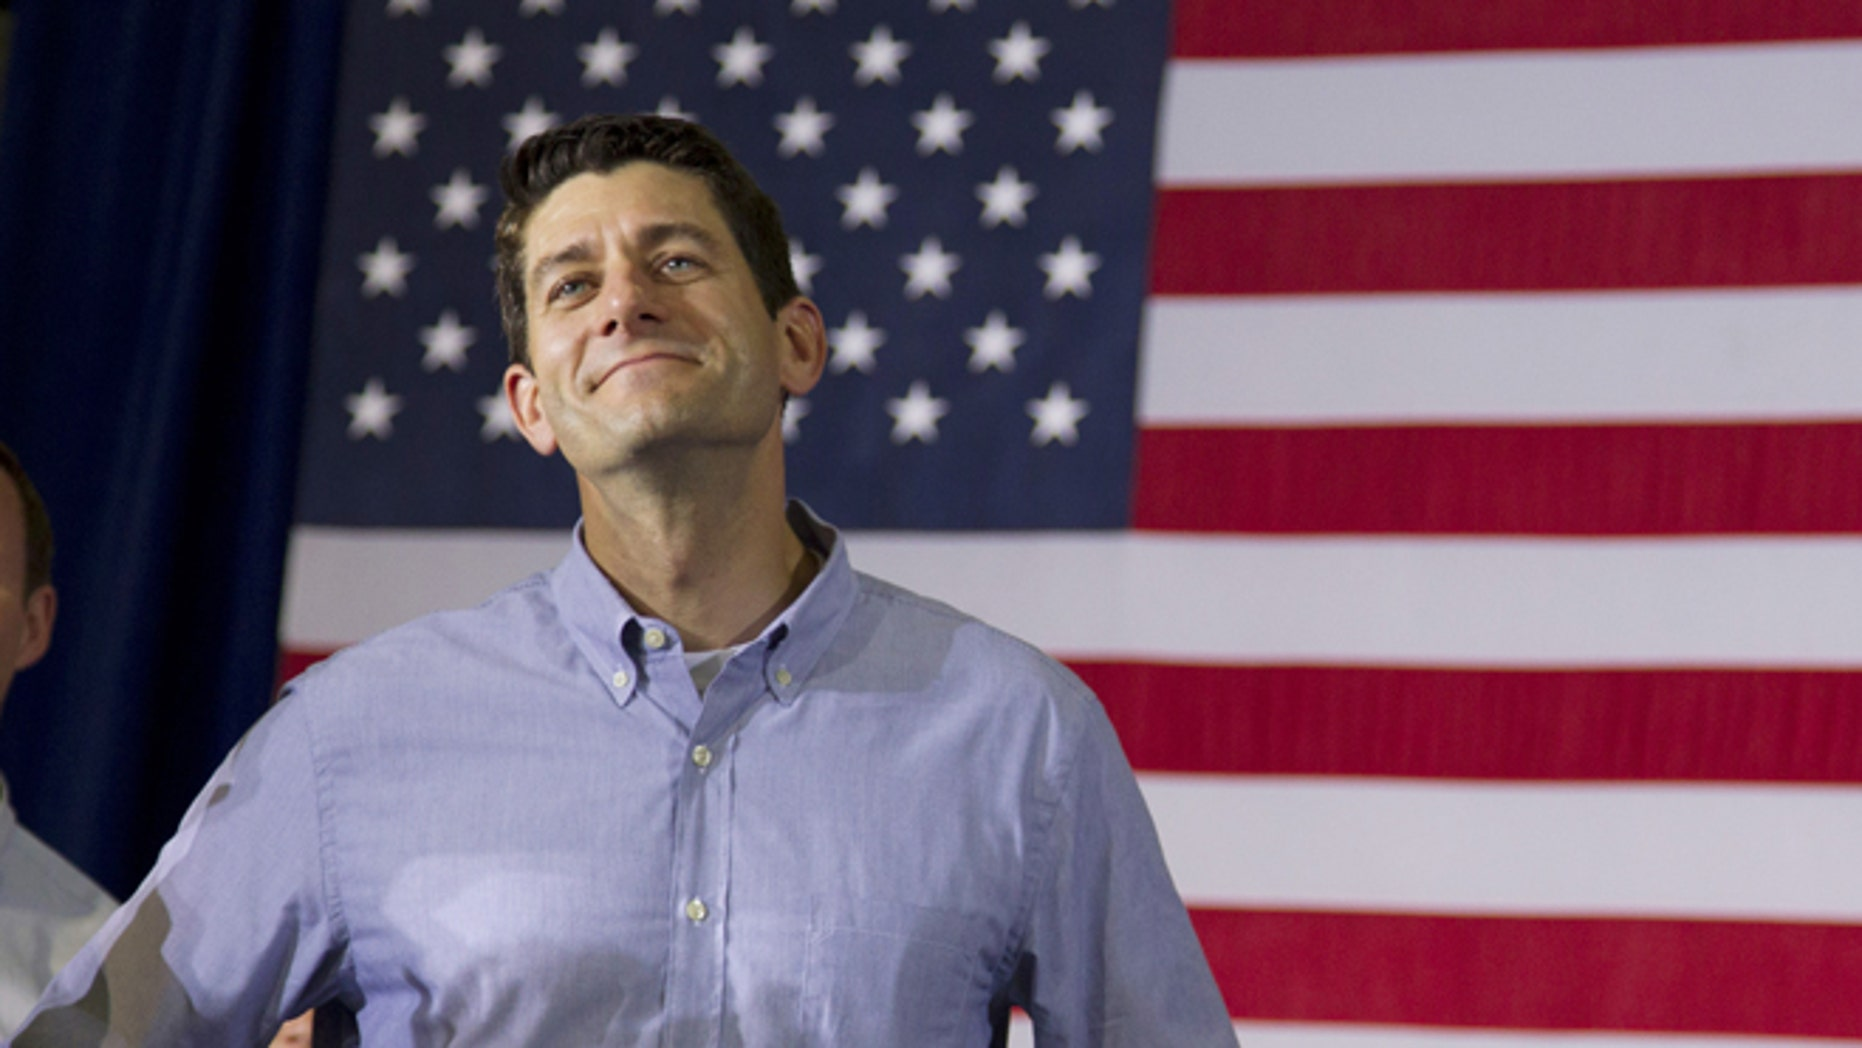 June 18, 2012: Rep. Paul Ryan, R-Wis., looks on during a campaign event with Republican presidential candidate, former Massachusetts Gov. Mitt Romney at Monterey Mills  in Janesville, Wis.